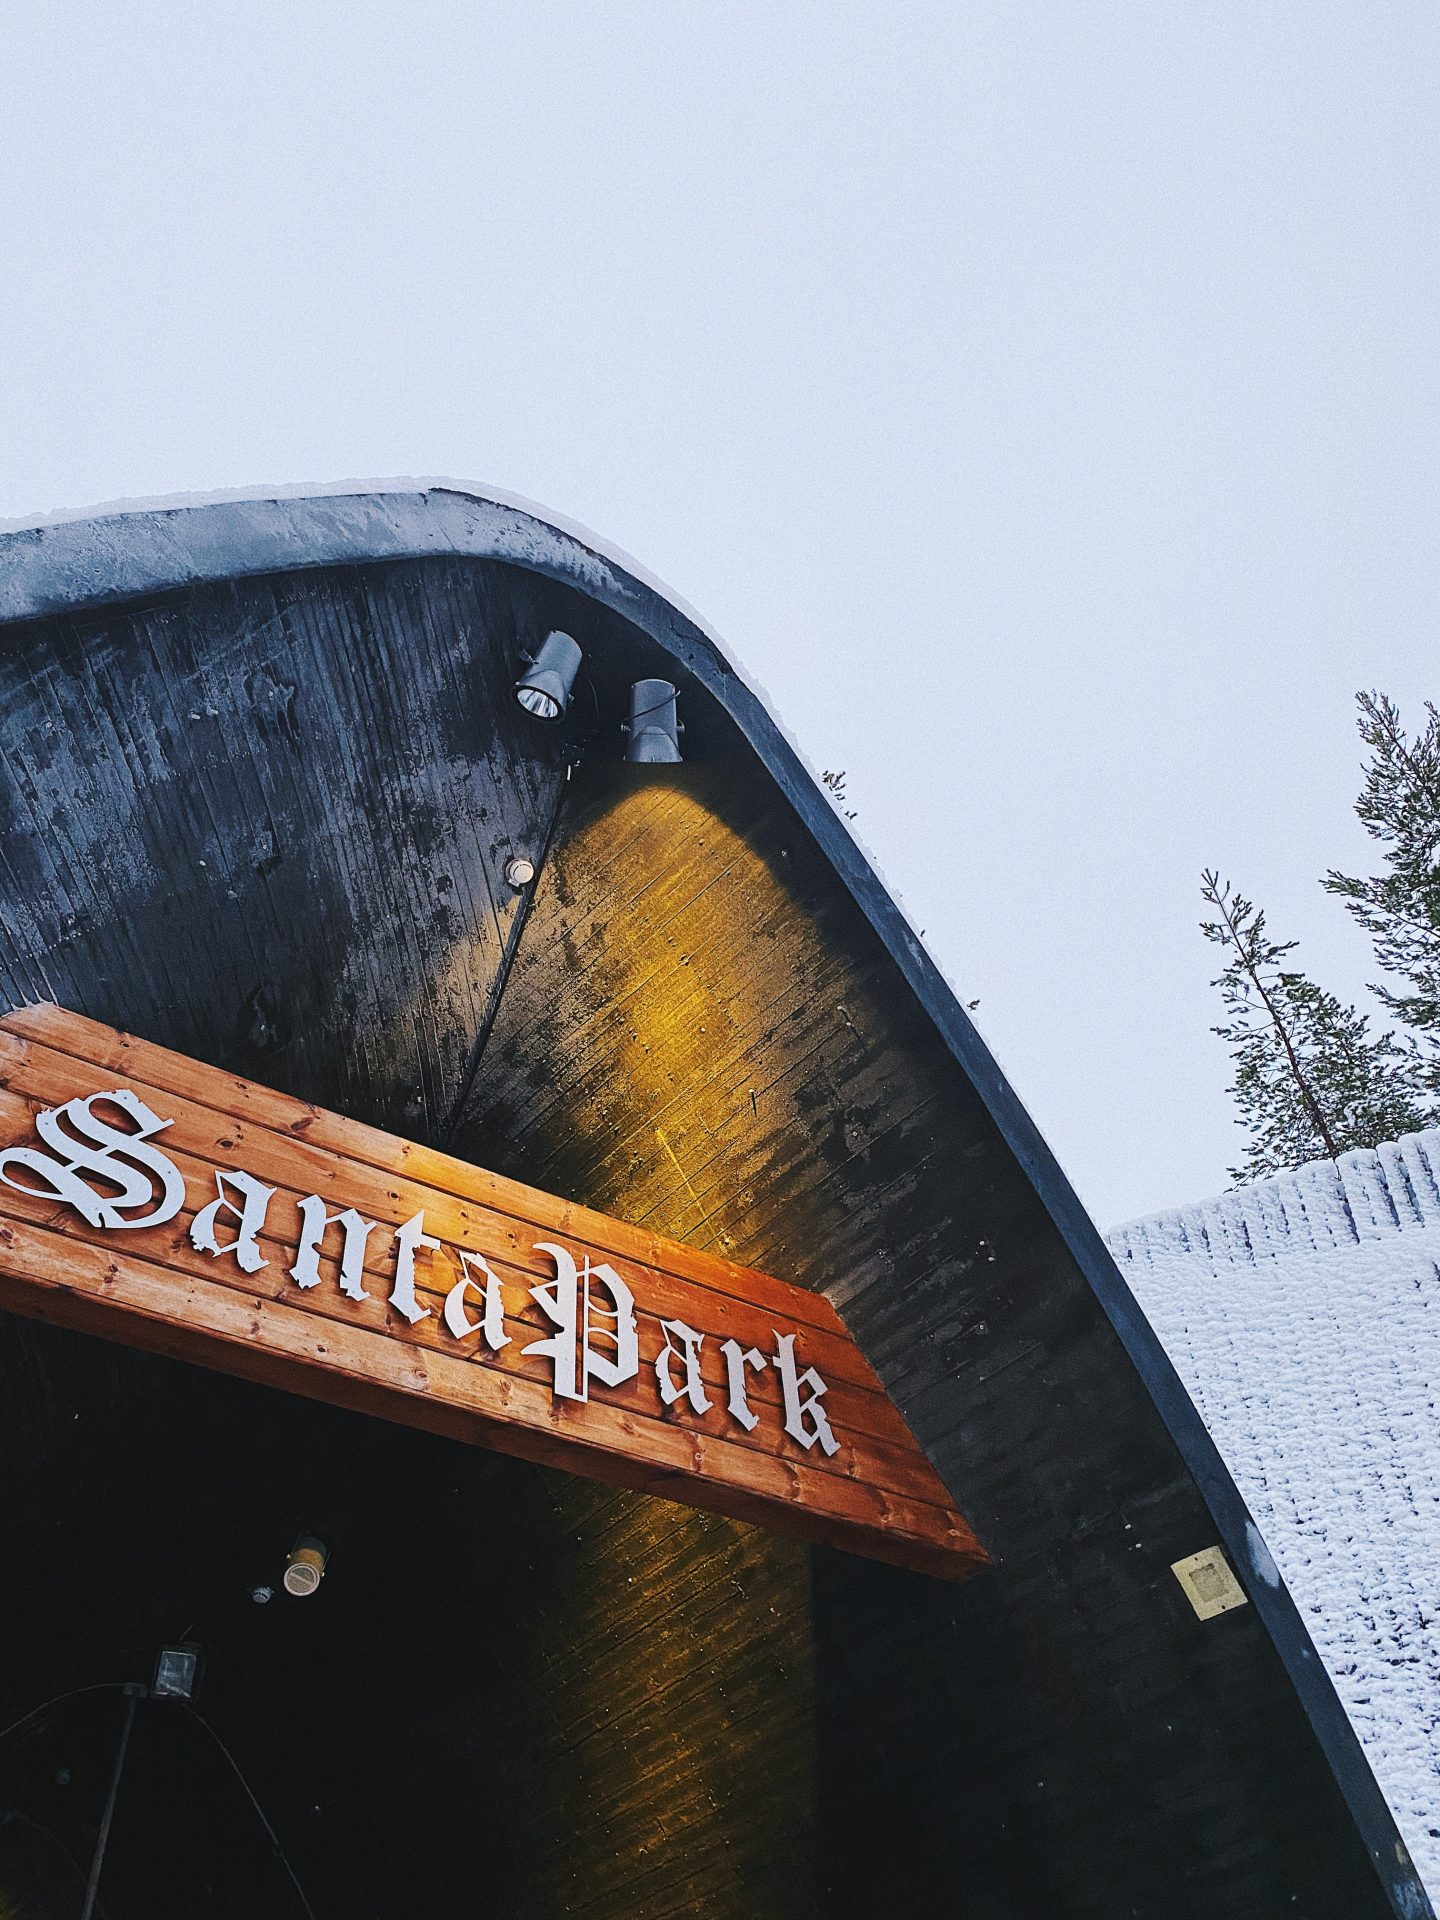 Travel guide and travel diary to Lapland, Finland and Rovaniemi, Finland with Santa Park